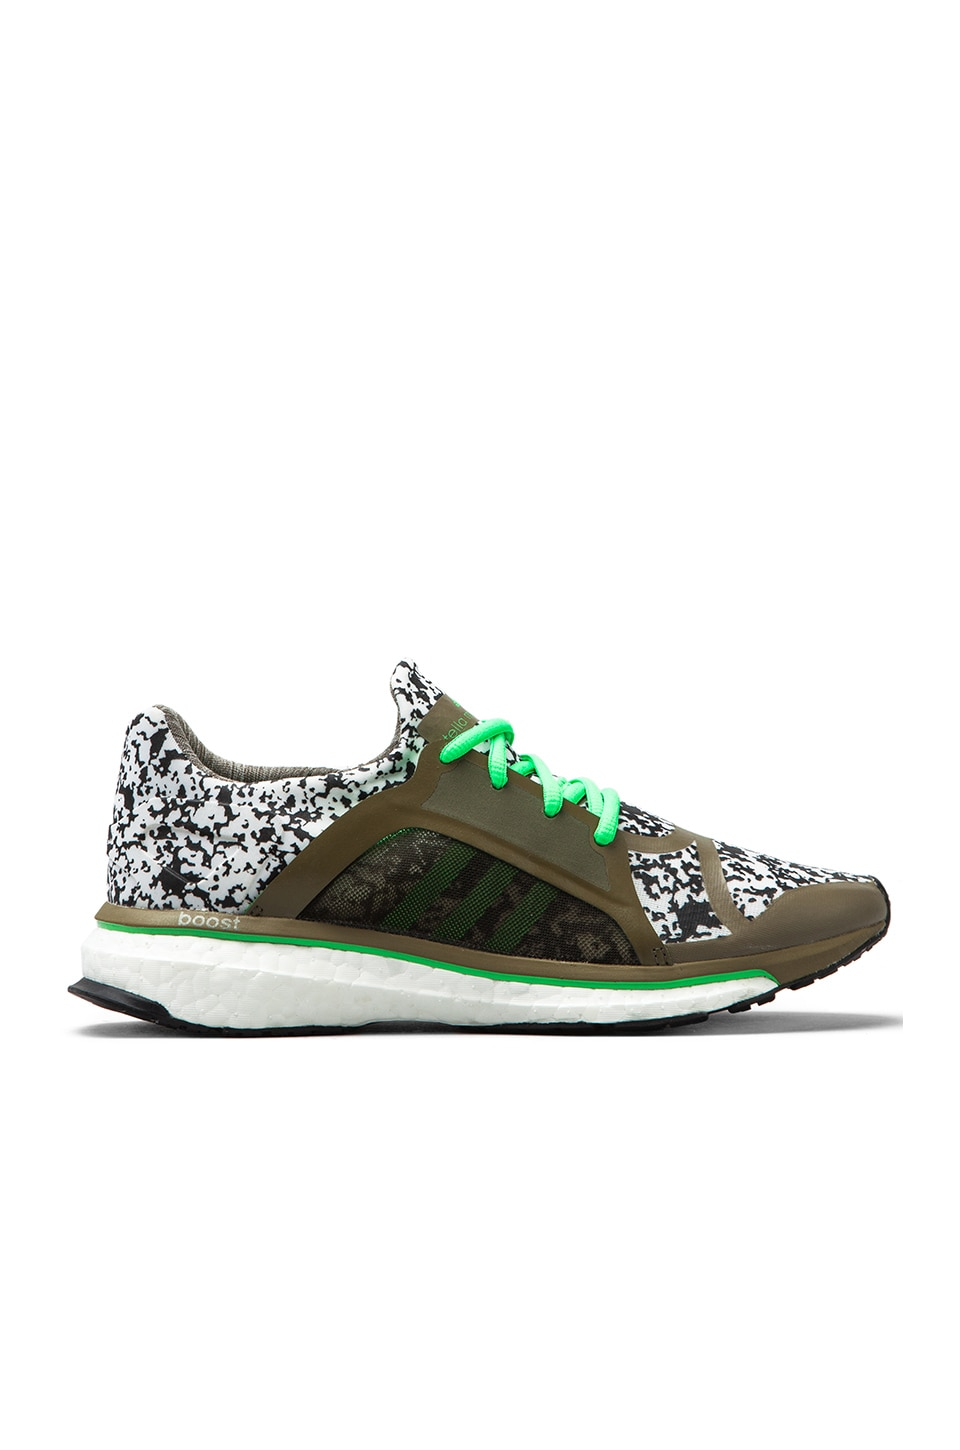 adidas by Stella McCartney Trochilus Boost Sneaker in Lizard/Green Zest/Running White